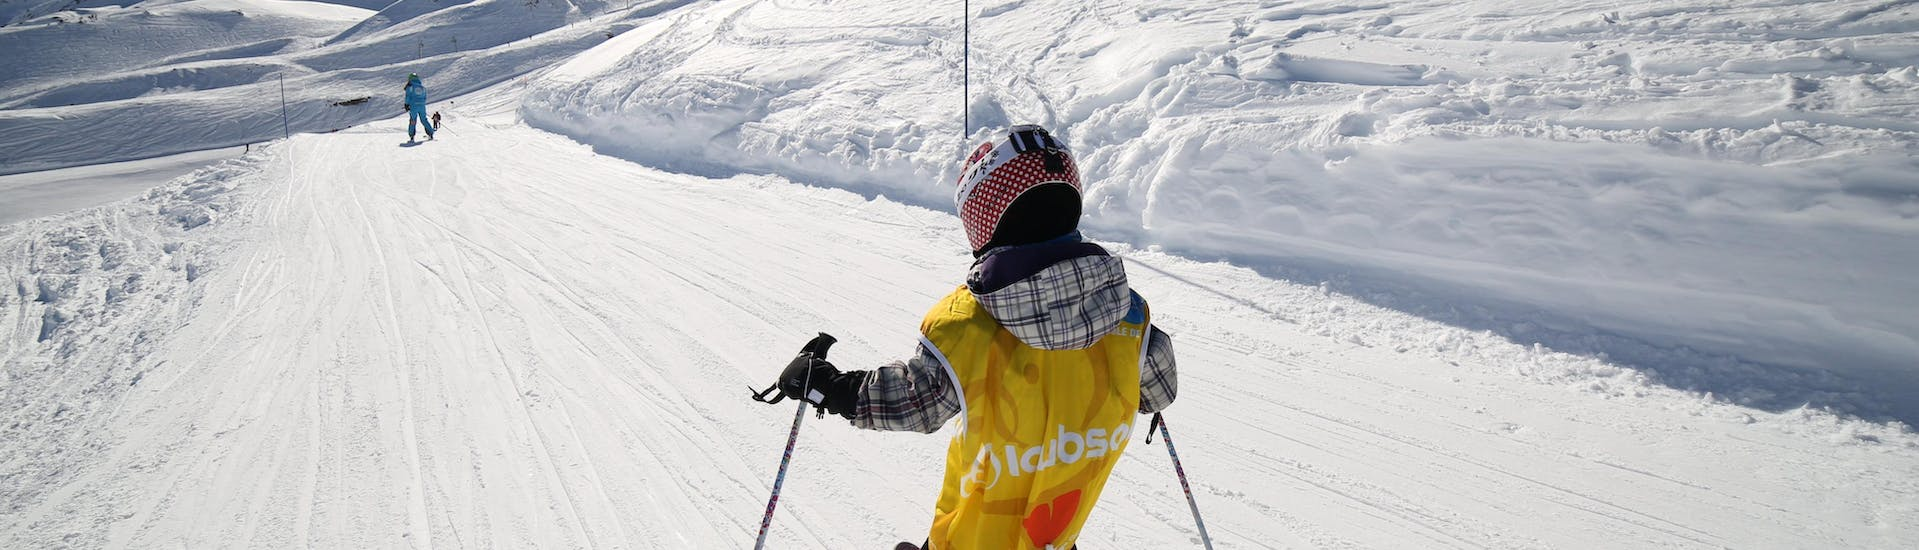 A youg skier is skiing down a snowy slope during his Kids Ski Lessons (3-6 years) - Holiday - All Levels with the ski school ESI Font Romeu.